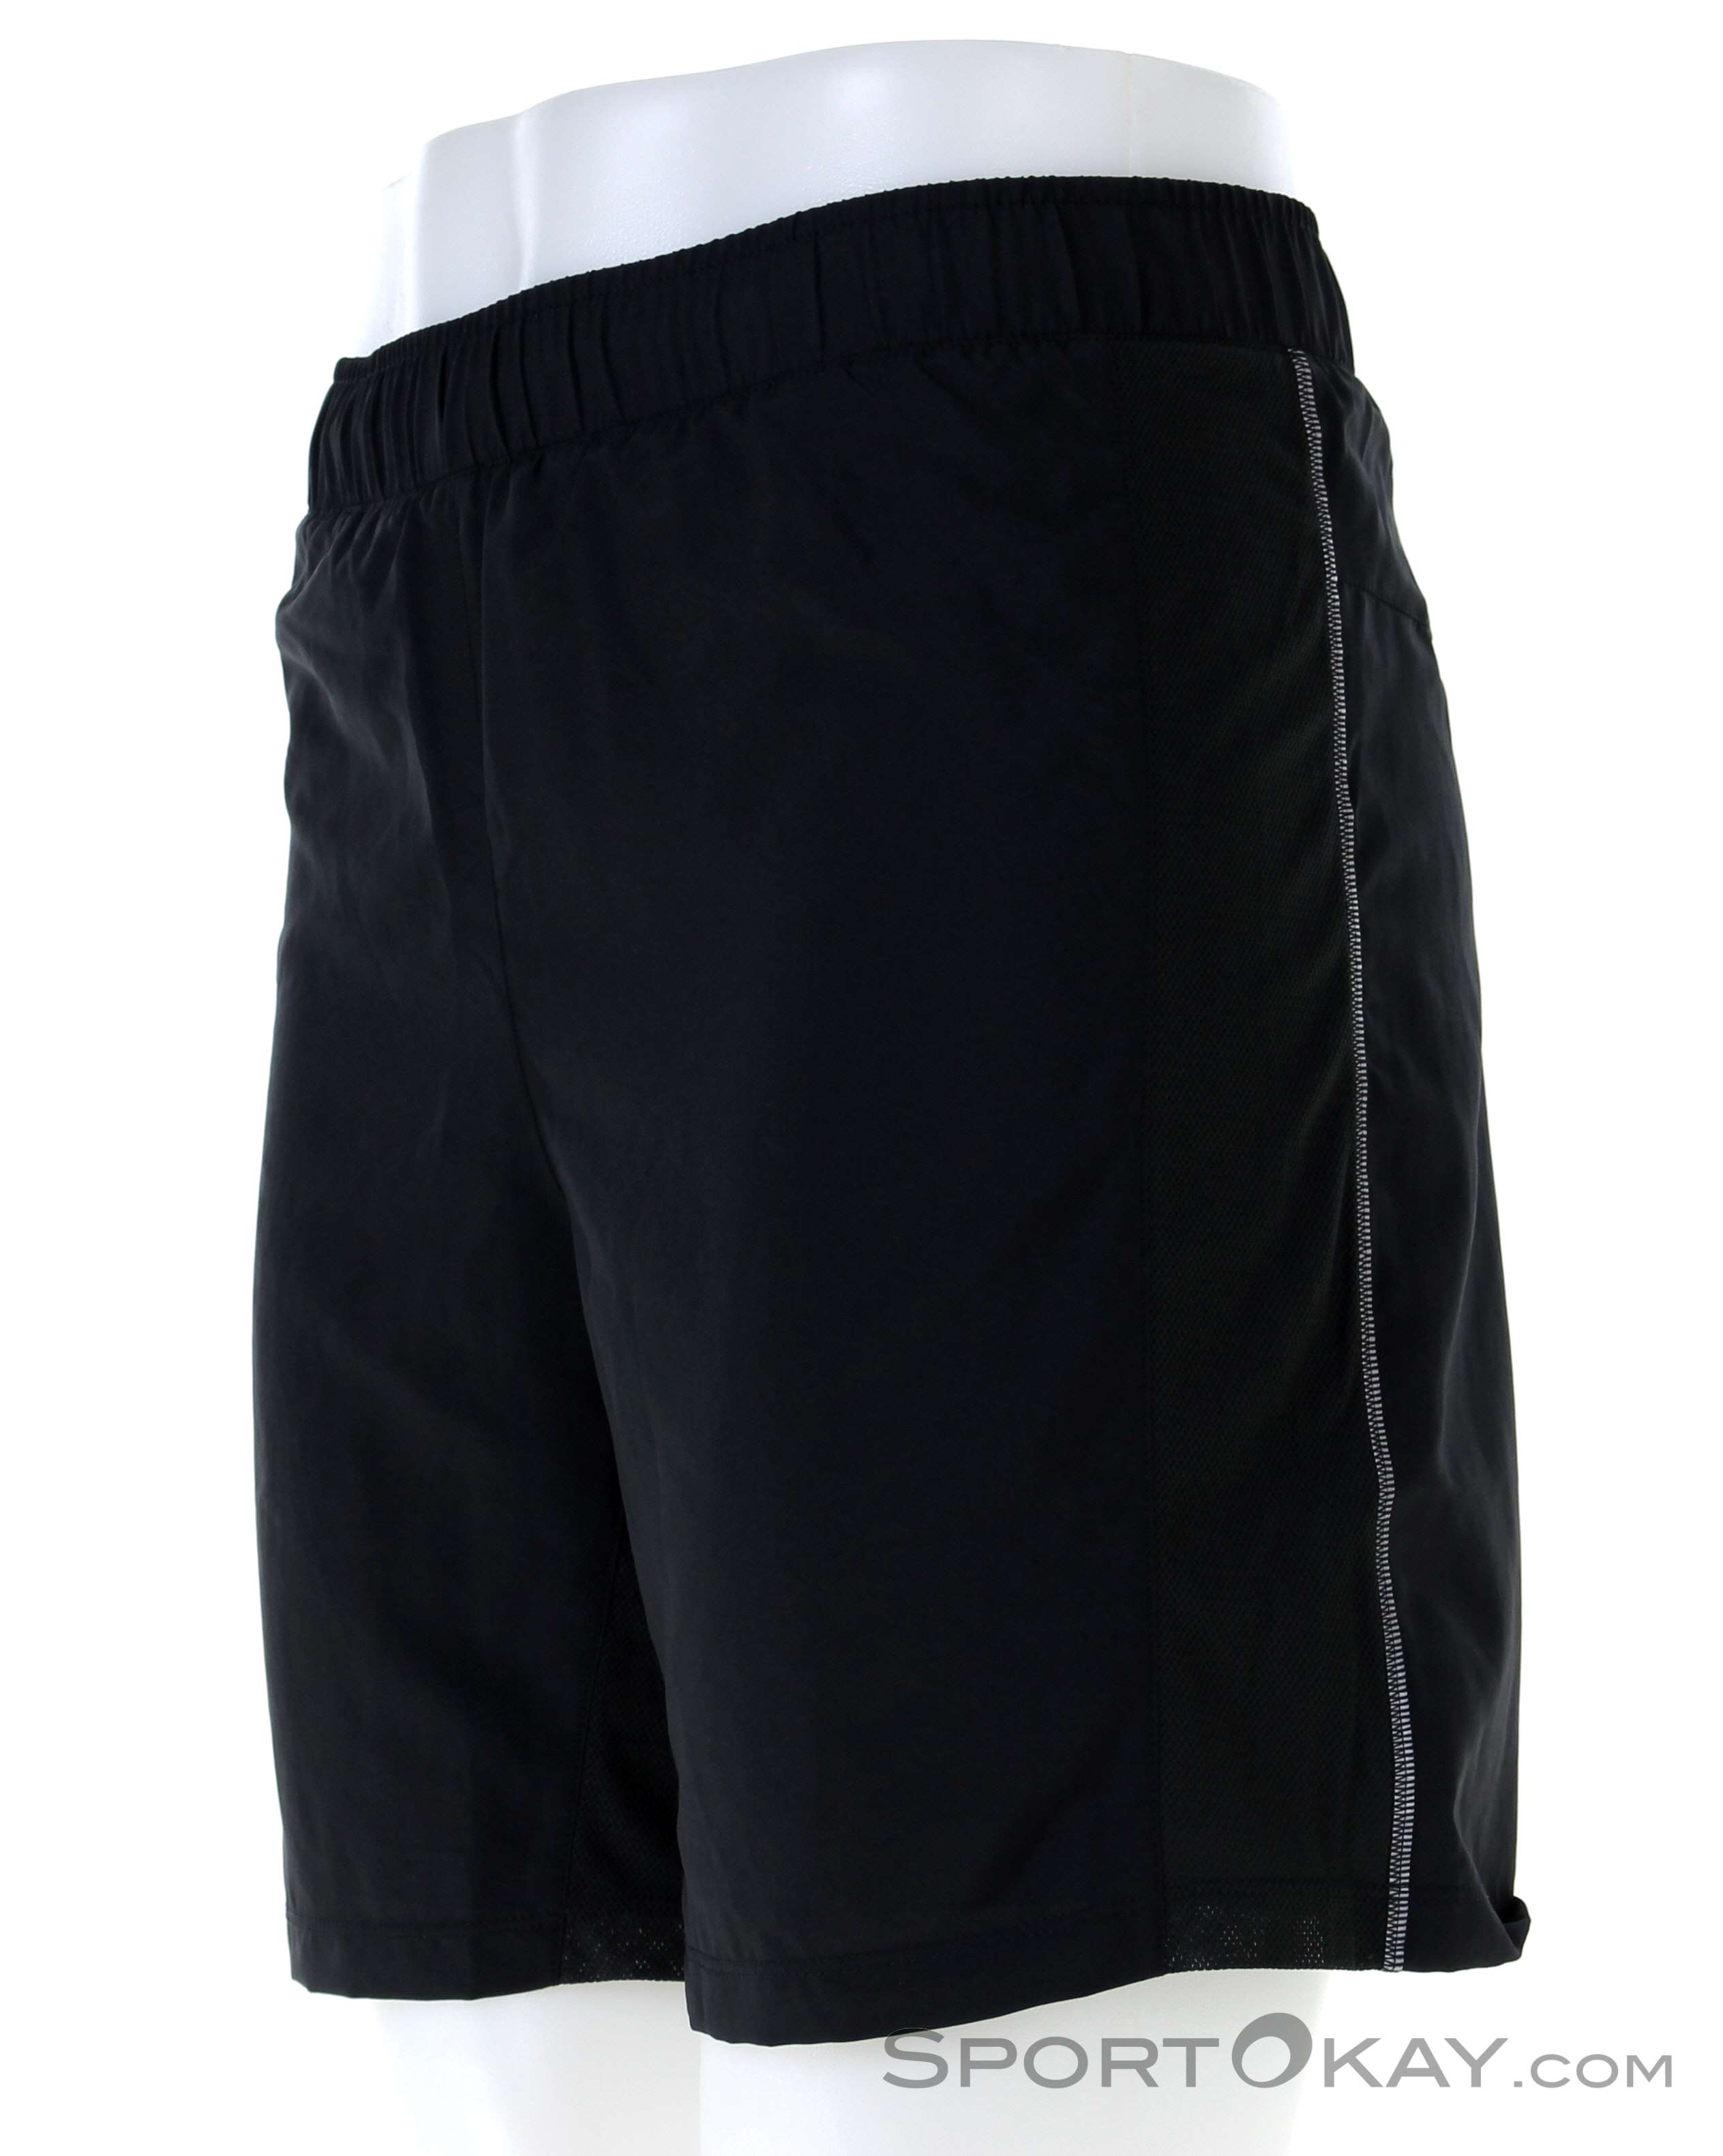 Salomon Agile 2in1 Mens Running Shorts Pants Fitness